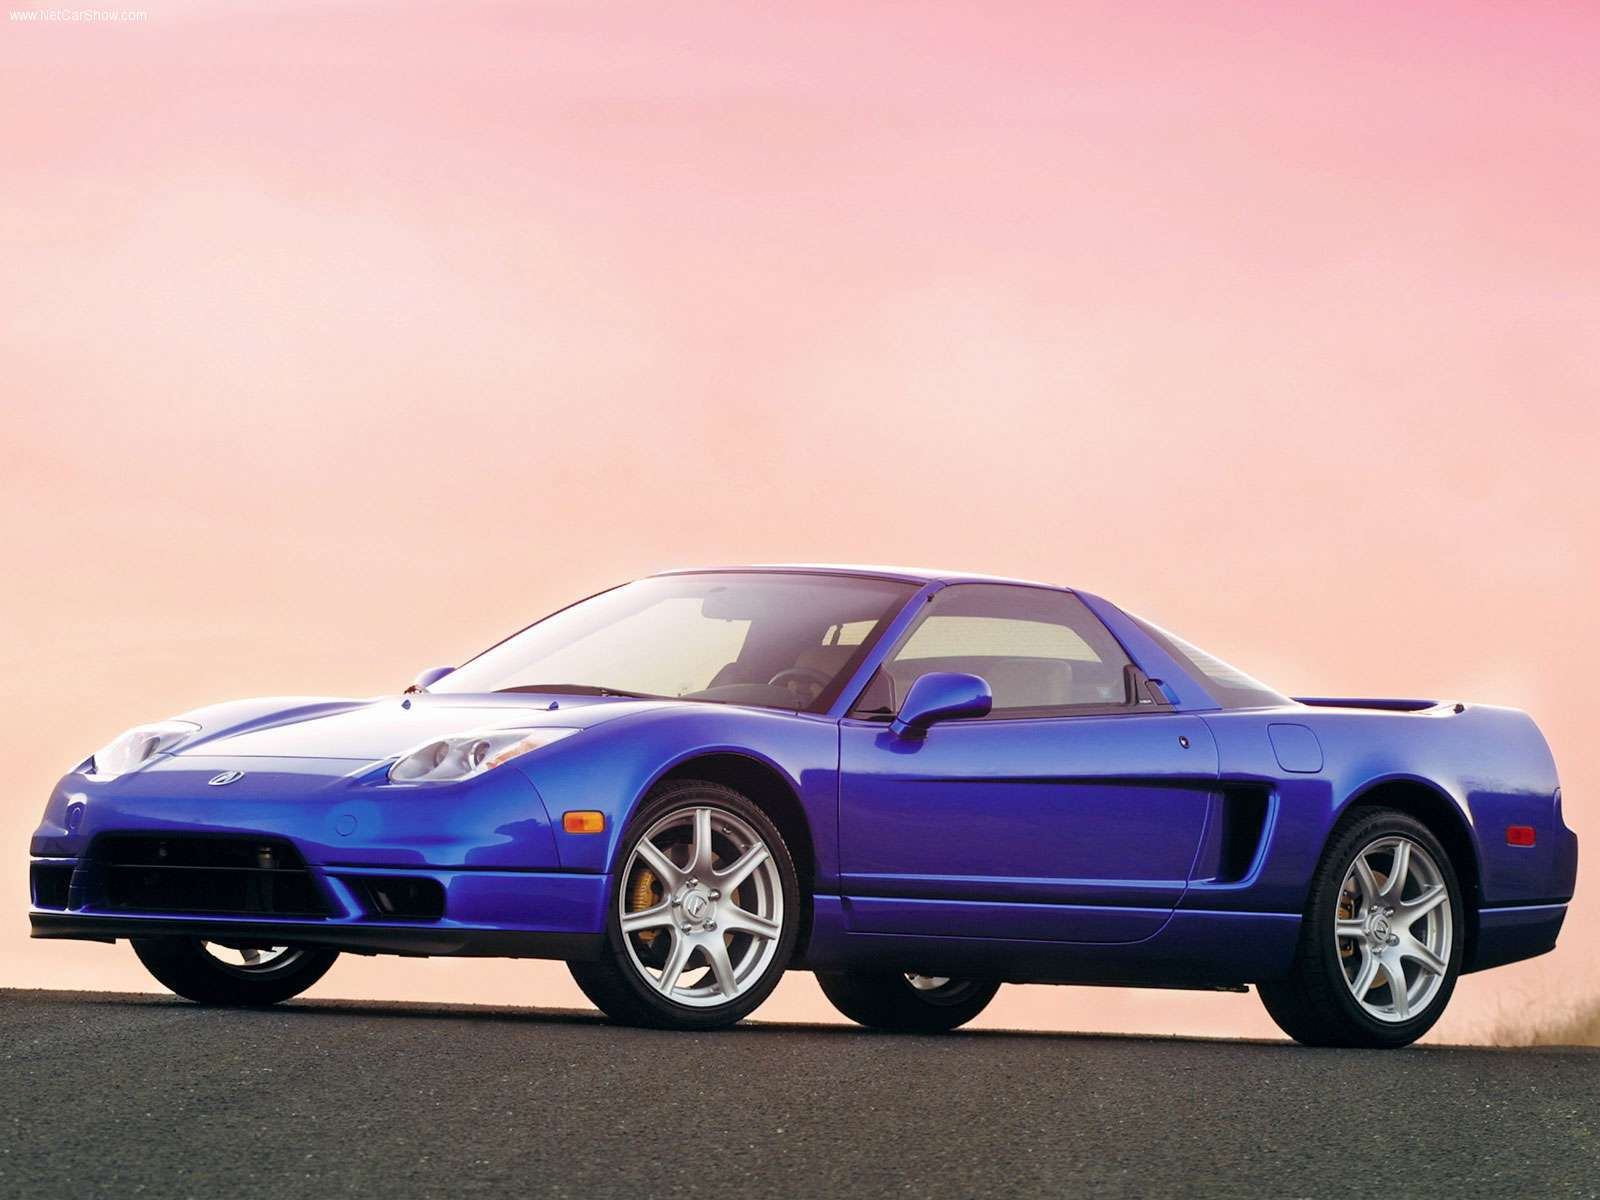 Tuning Acura Nsx Coupe 2005 Online Accessories And Spare Parts For 1997 Tl Seat Wiring